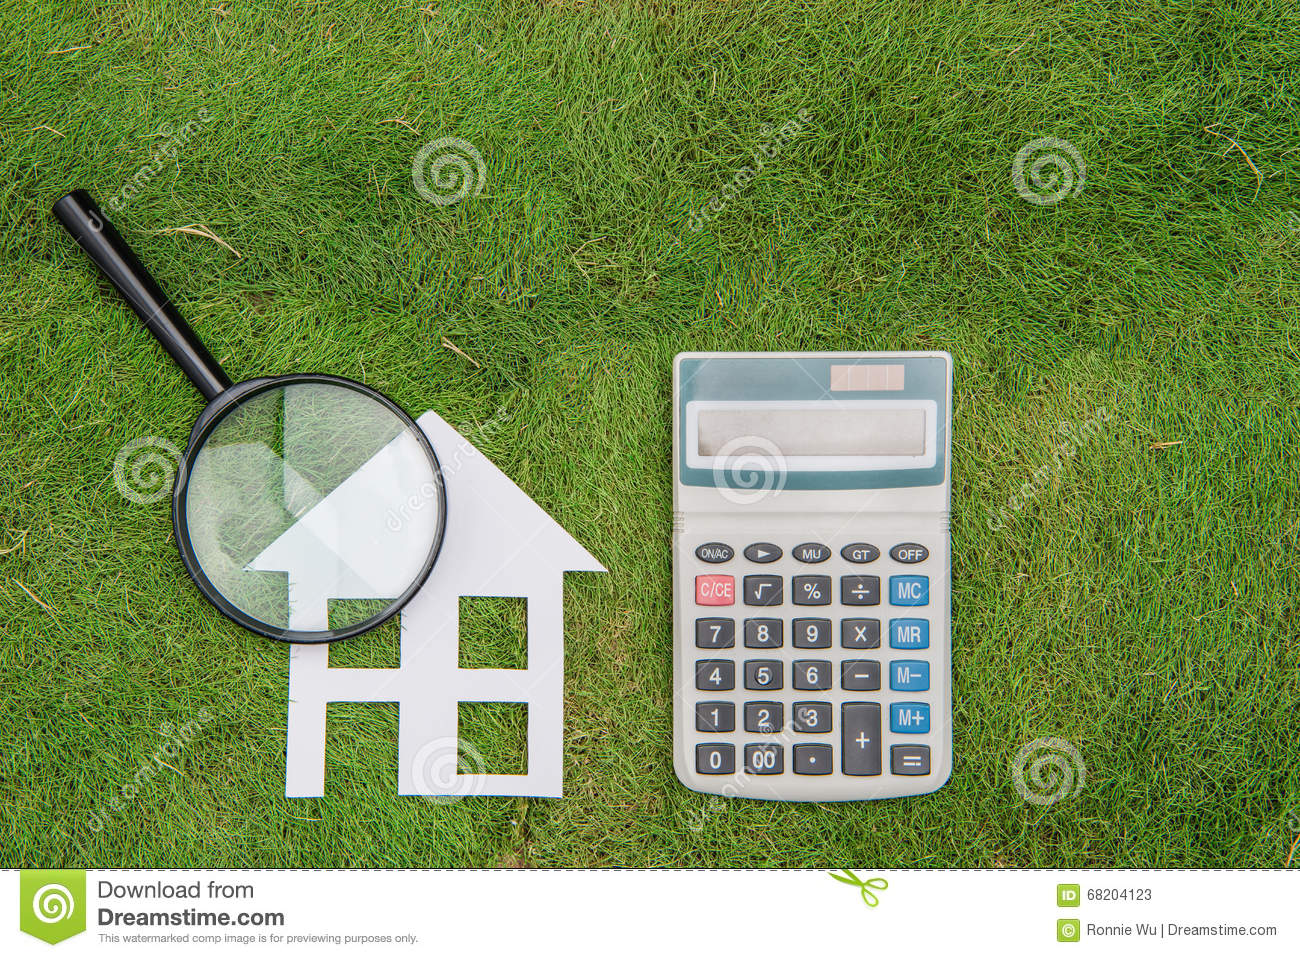 Buy green building house mortgage calculations calculator for Build my home calculator